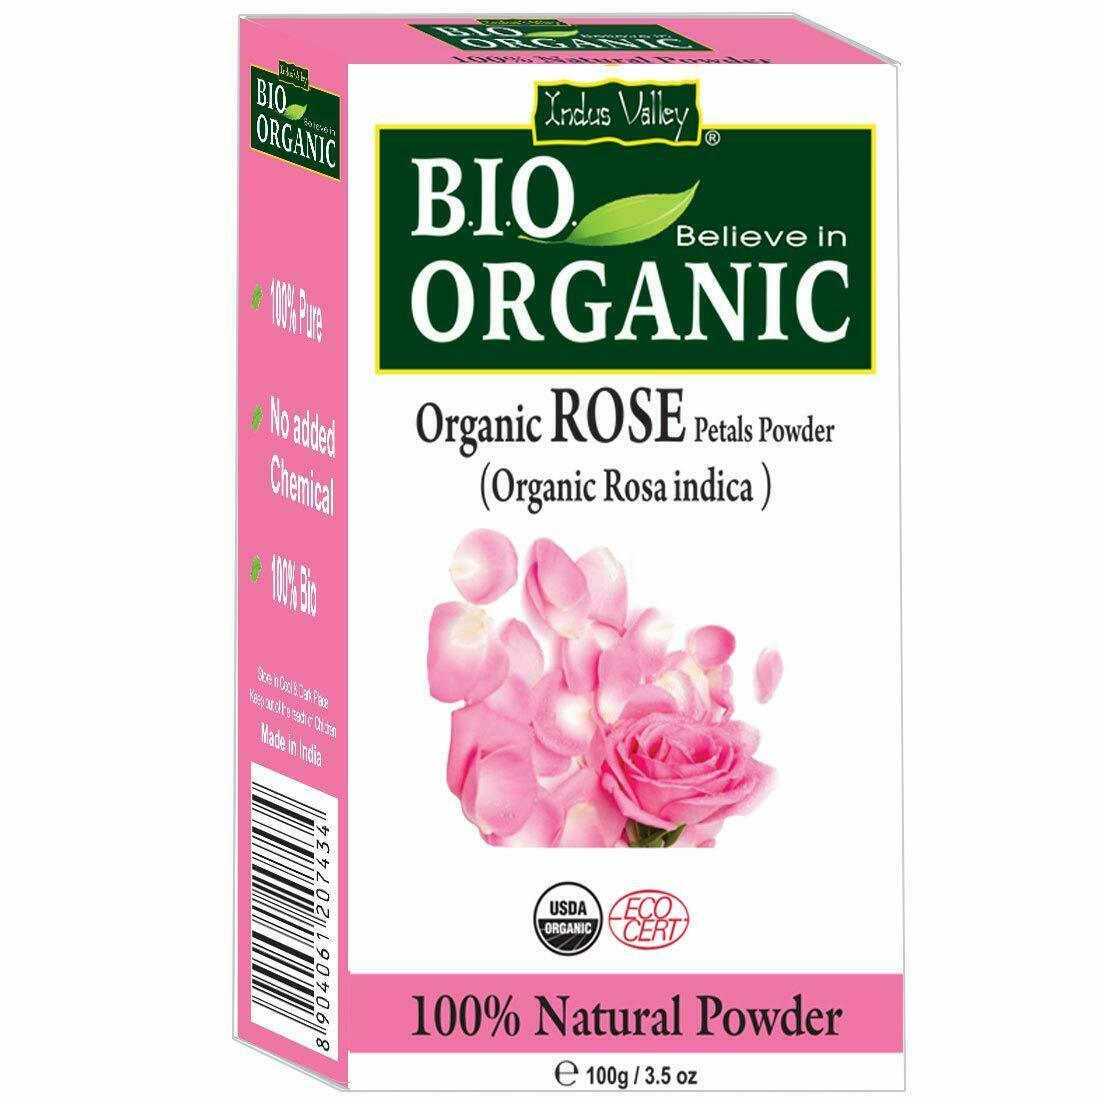 Indus Valley 100% Organic Rose Petals Powder image 6